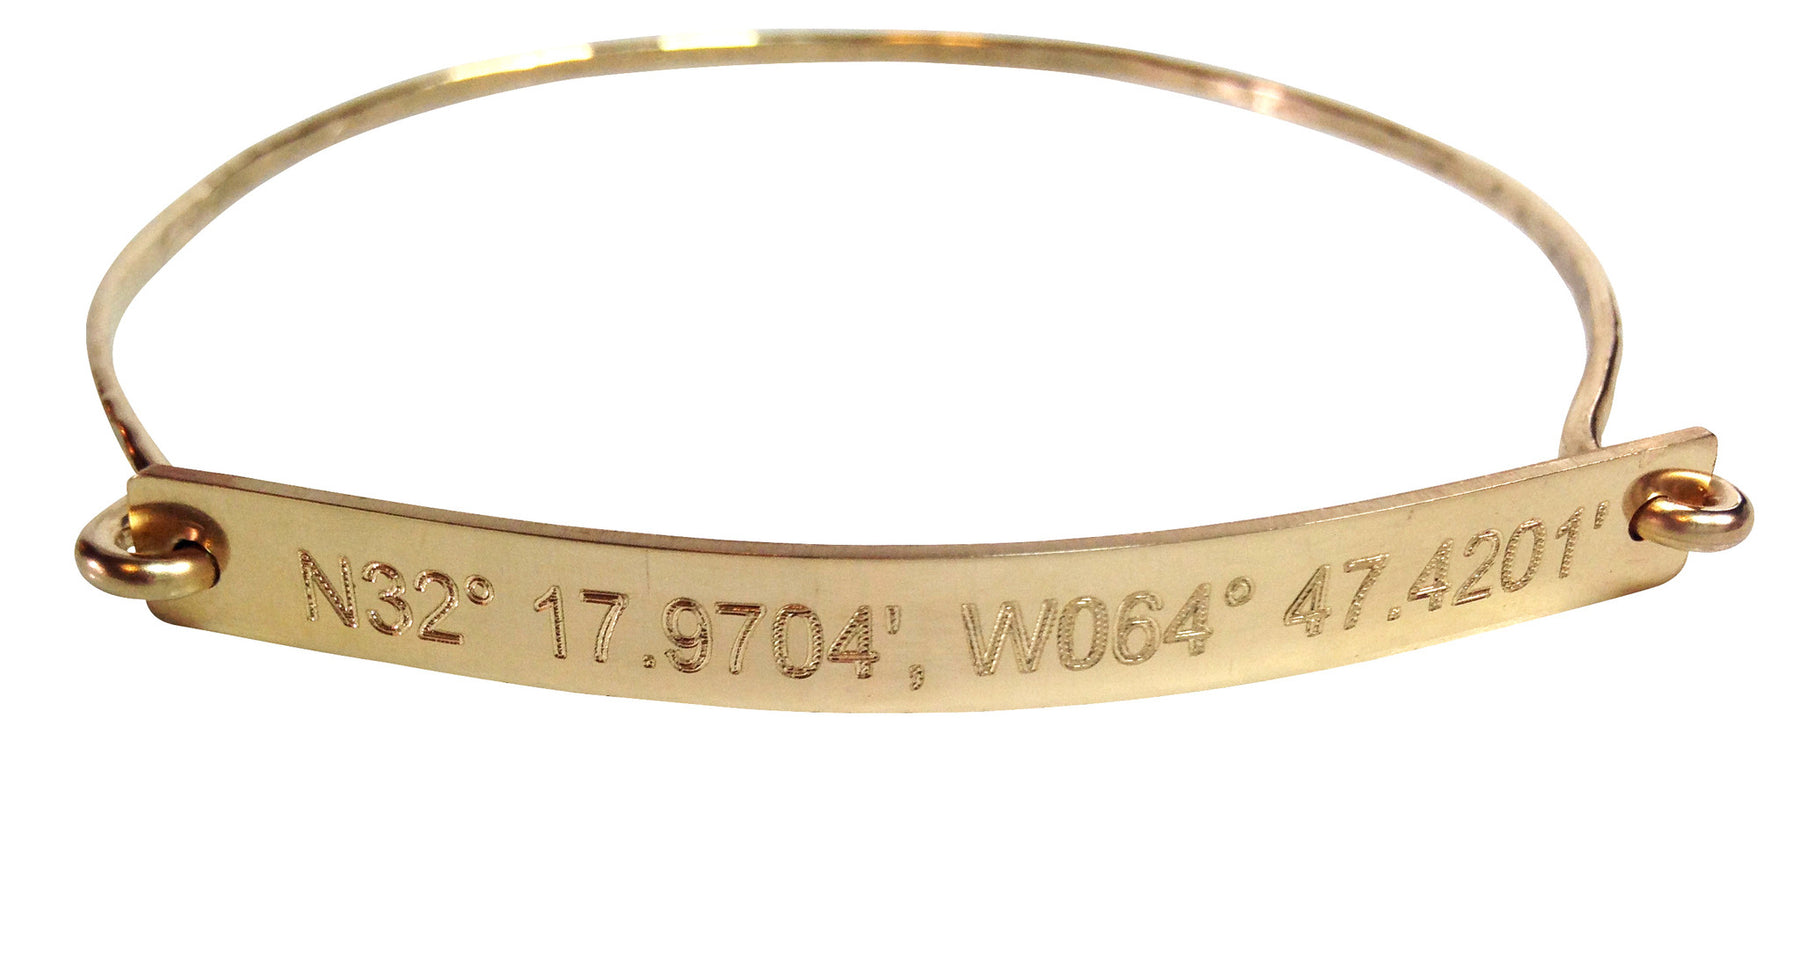 her for jewelry gps coordinate gold bangle bracelet christmas gift coordinates friend